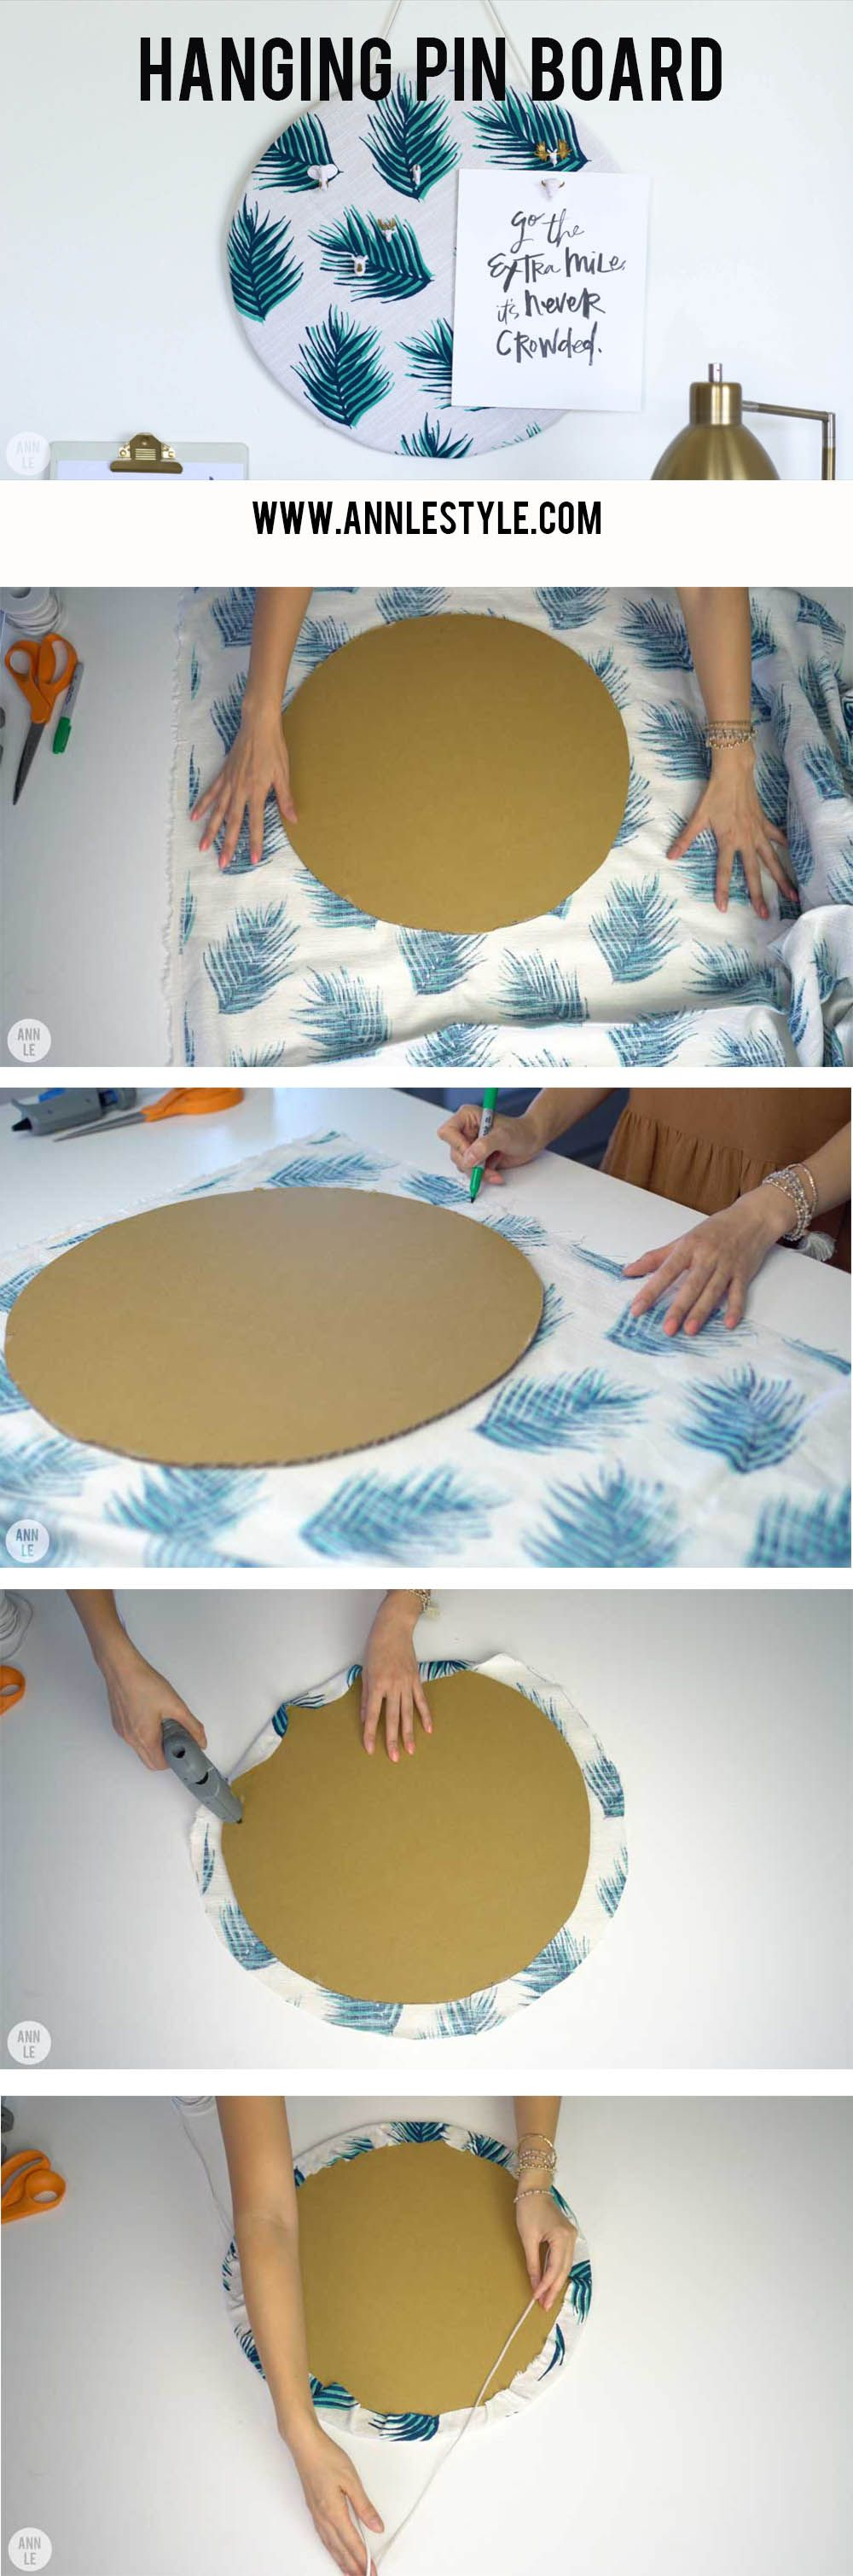 Easy Cardboard Pin Board | 5 DIY Desk Decors for Your Home Office ...